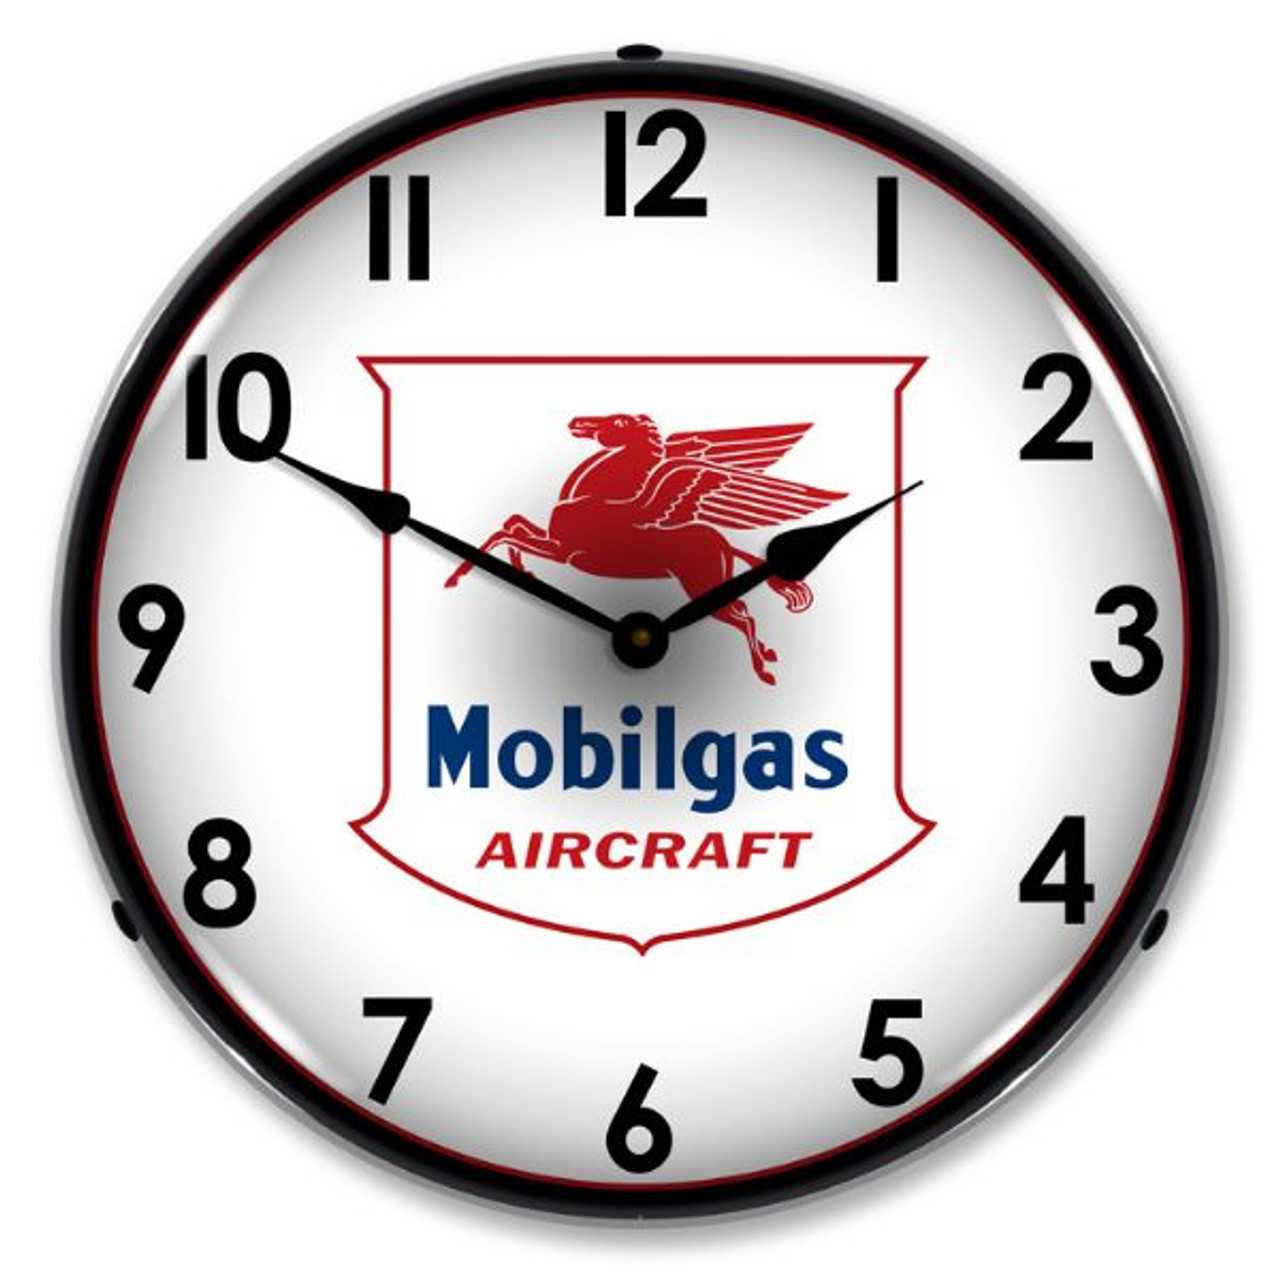 Mobilgas Avaition Lighted Wall Clock 14 x 14 Inches